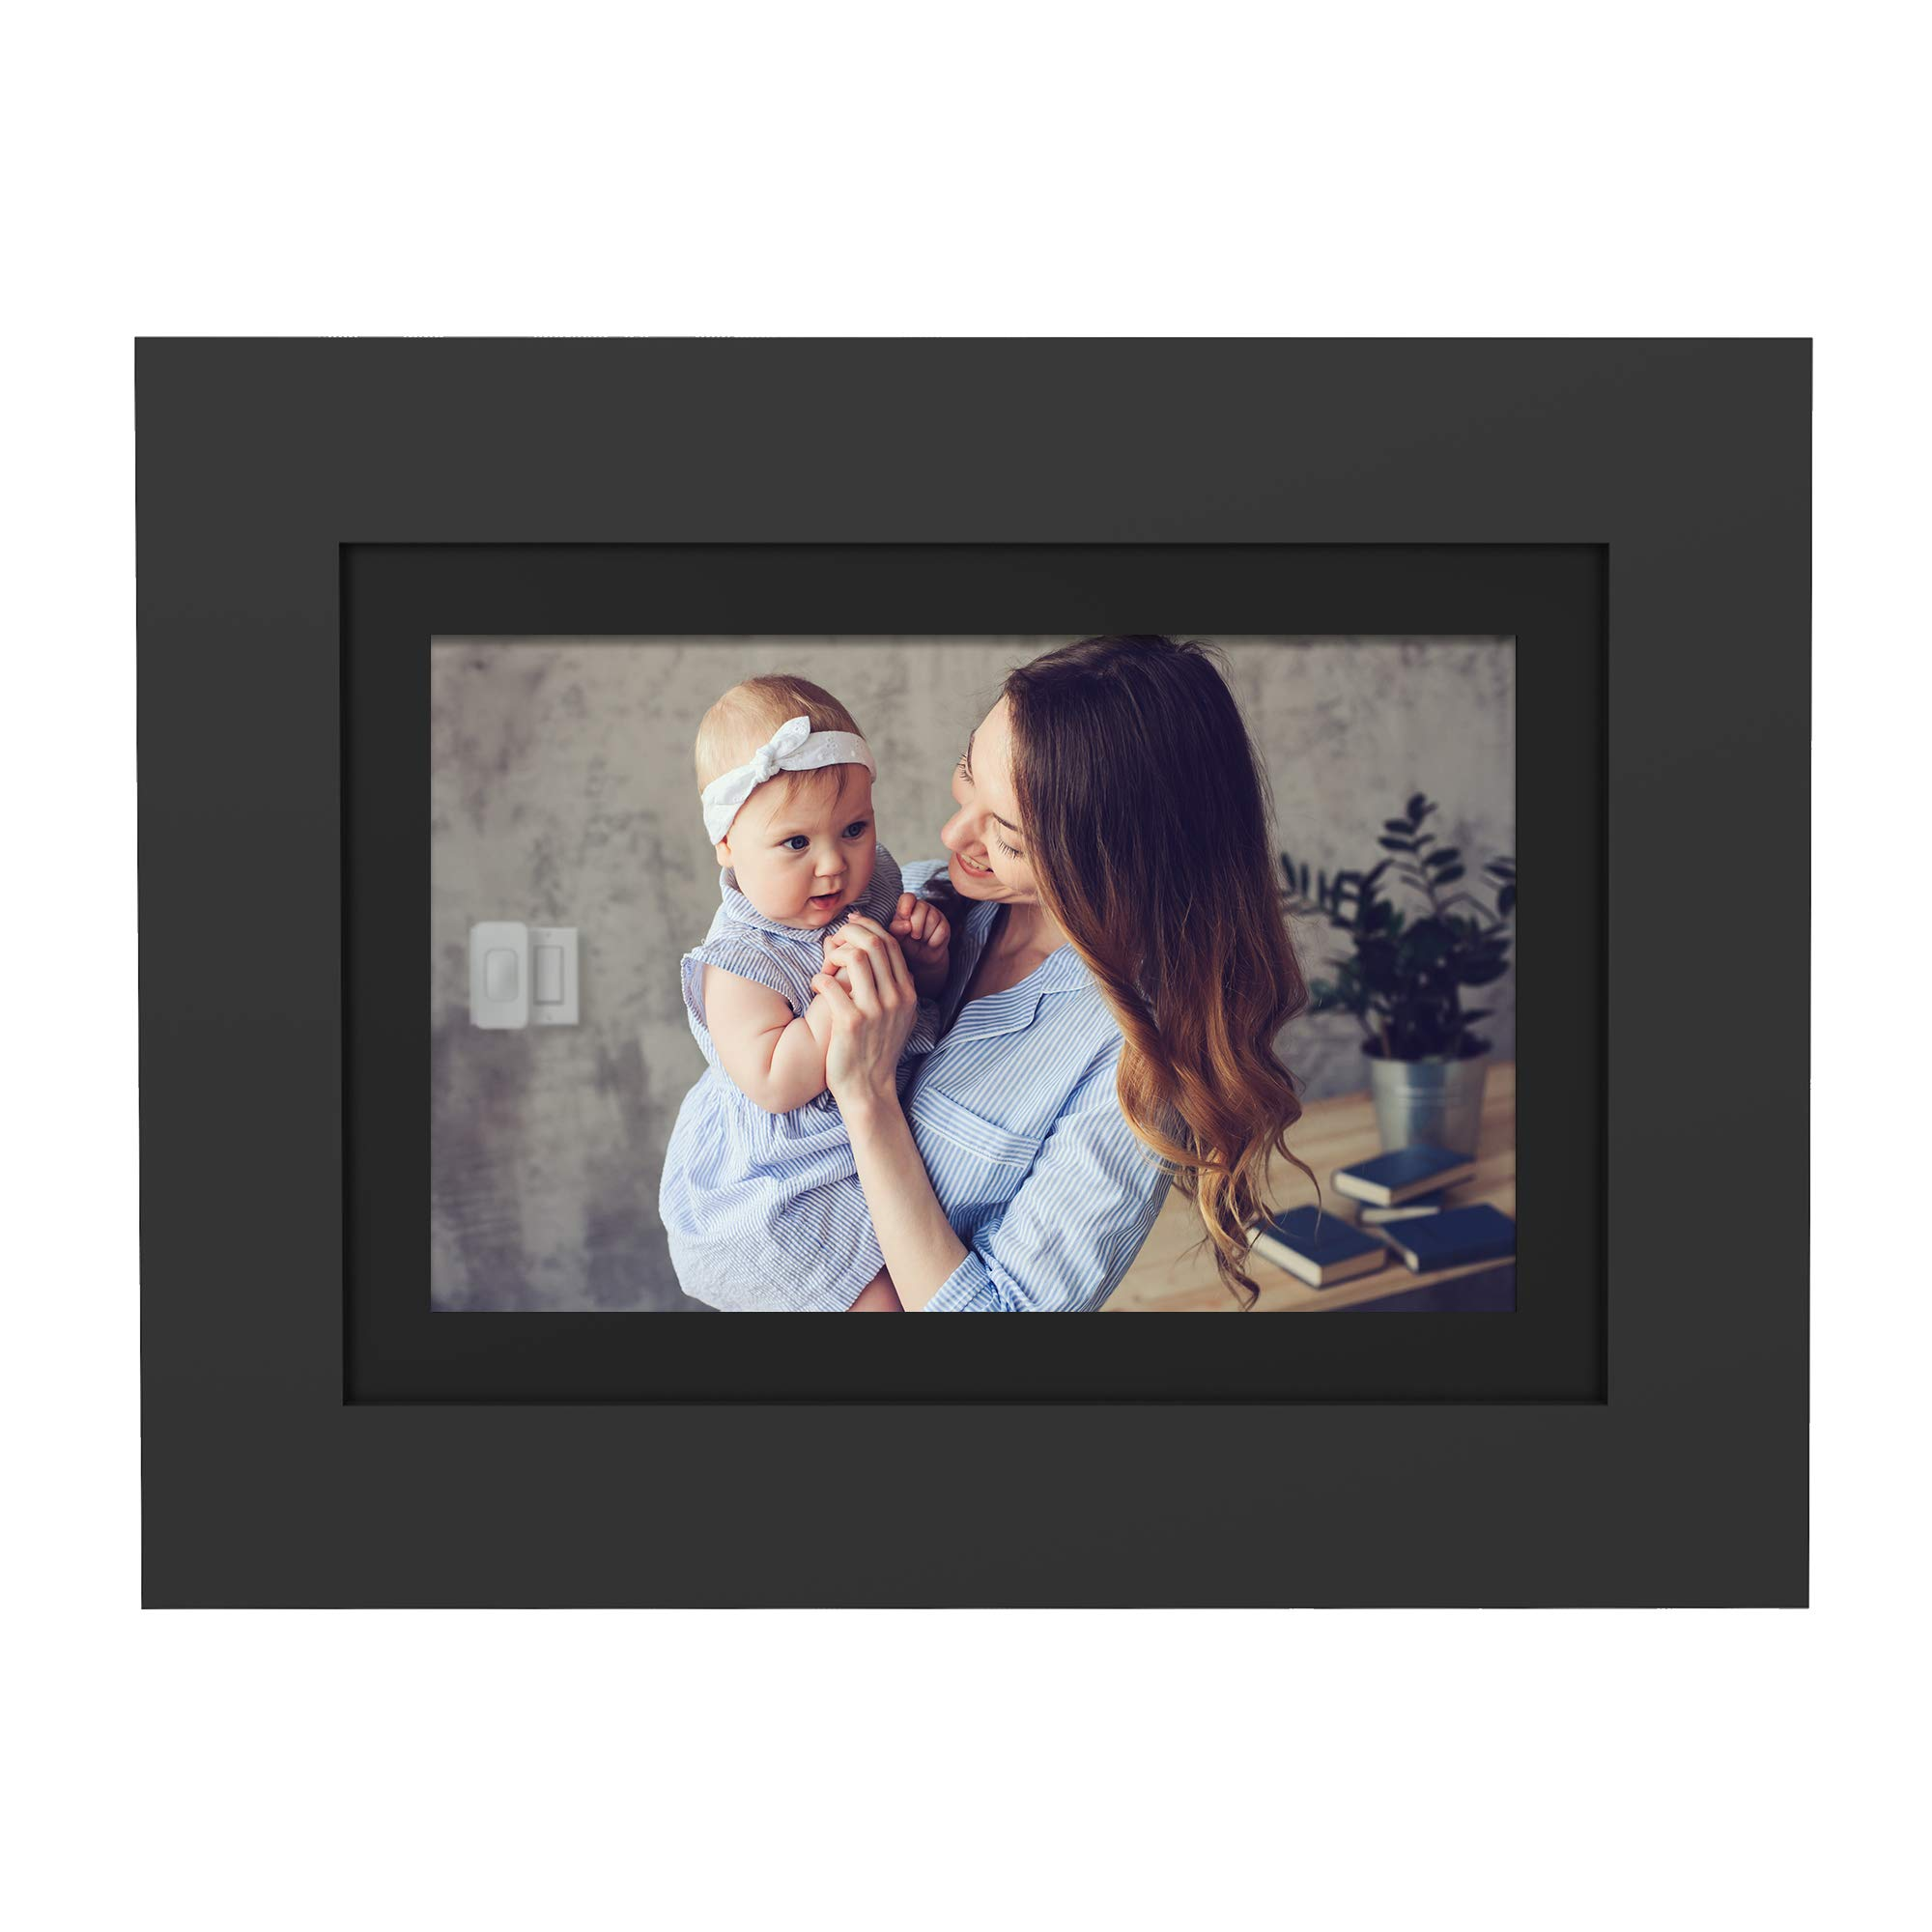 PhotoShare Friends and Family Cloud Frame 8'' Digital Photo Frame, Send Pics from Phone to Frame, Wi-Fi, 8 GB, Holds Over 1,000 Photos, HD, 1080P, Black/White Mattes, iOS, Android by Switchmate